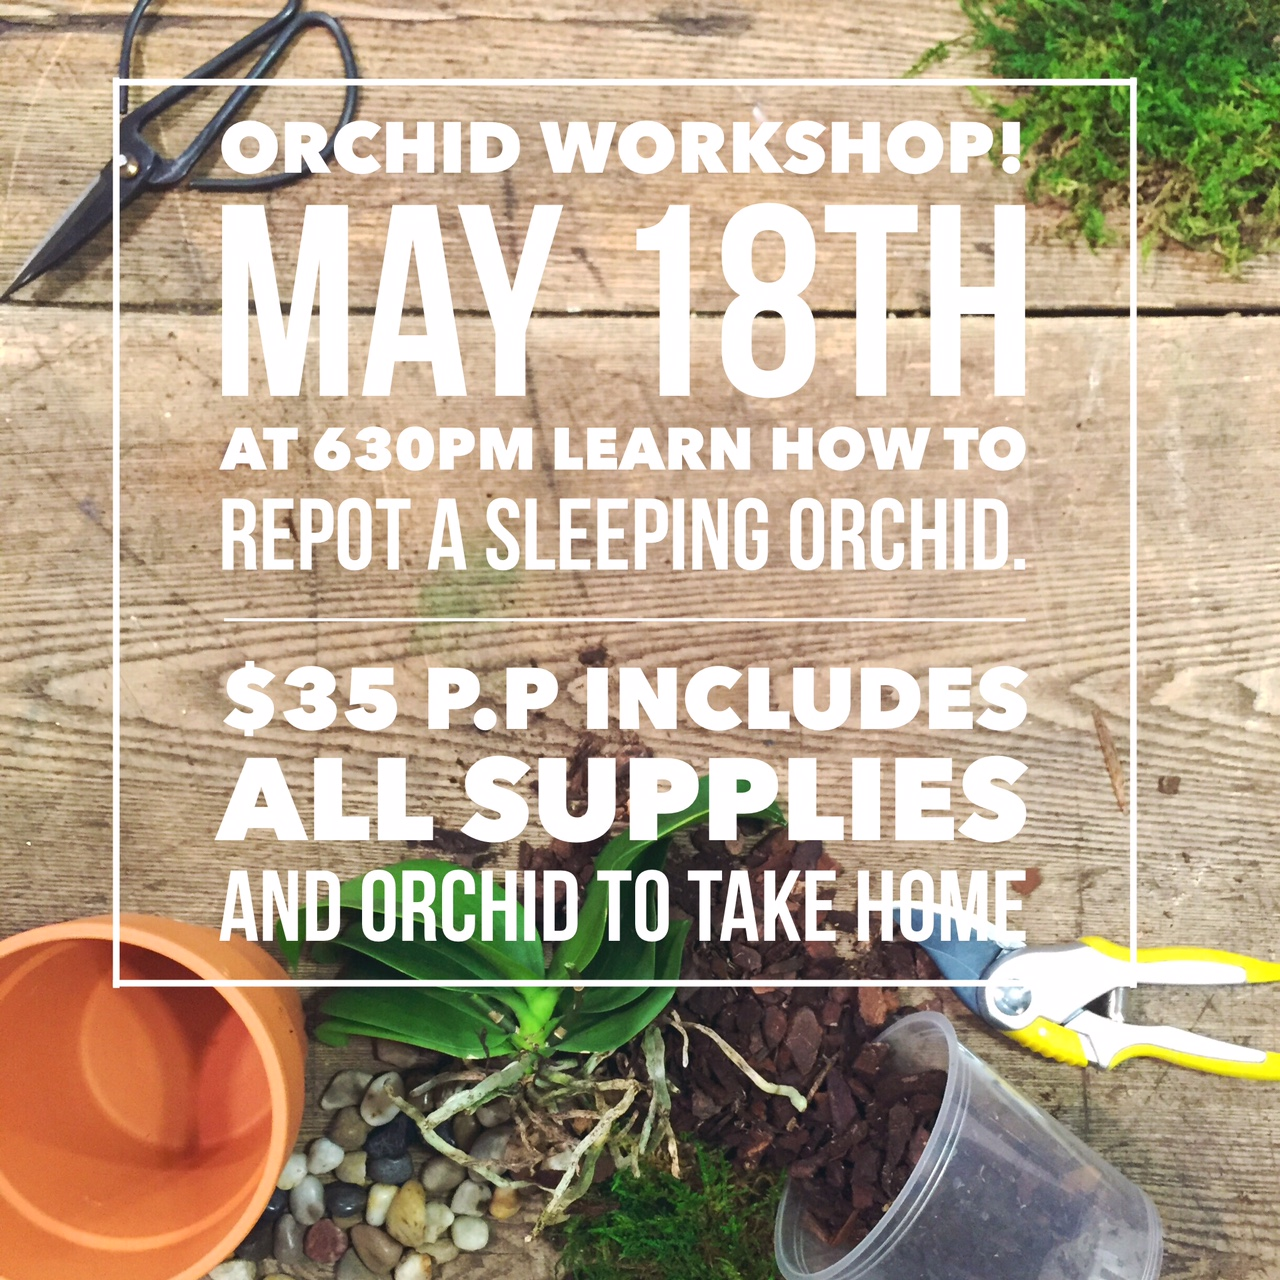 Orchid Workshop